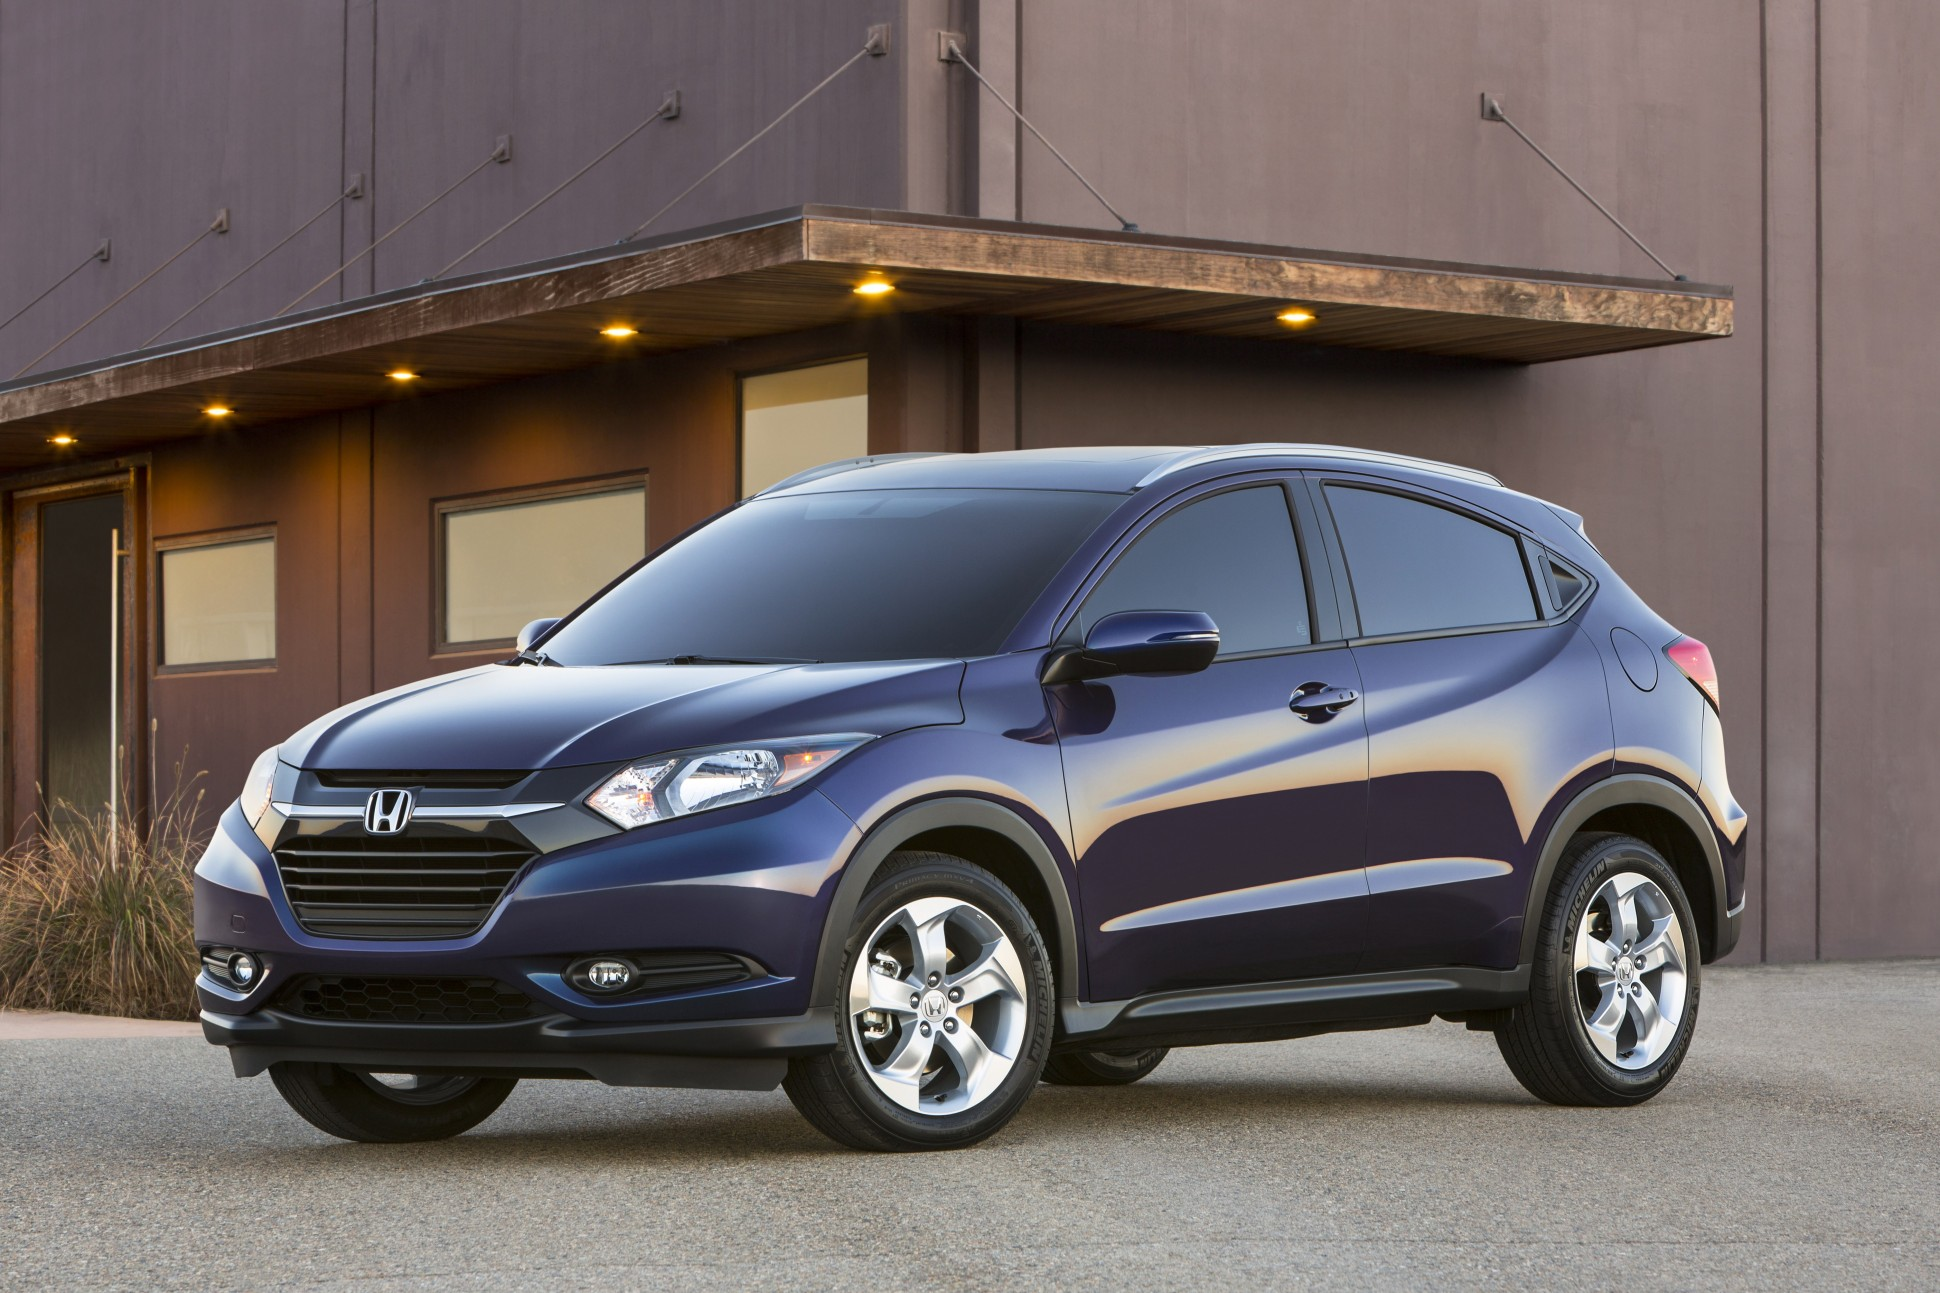 honda hr-v wallpaper #4